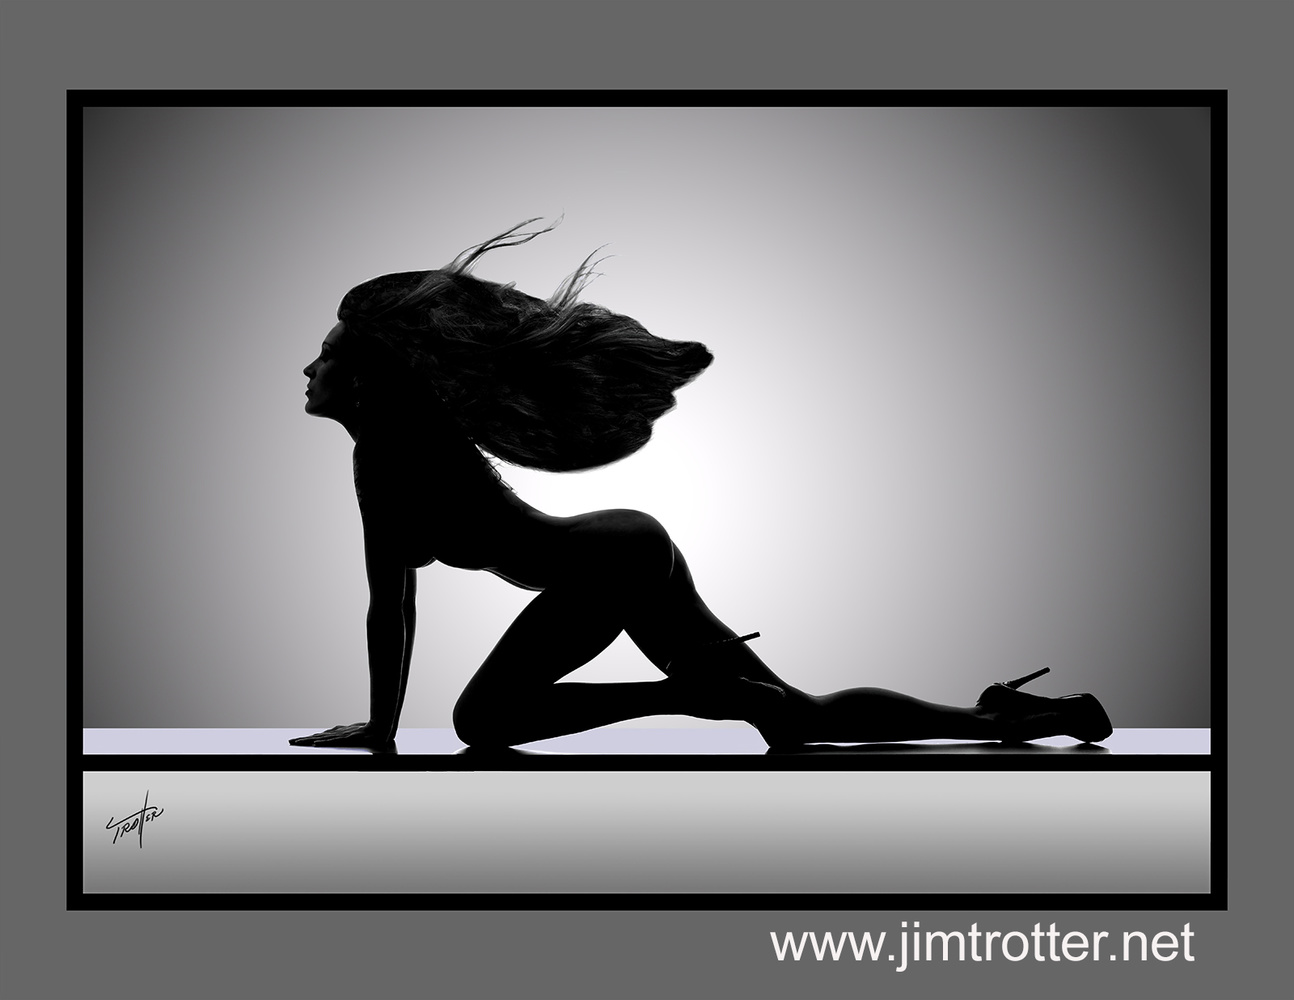 Untitled 2 by jim trotter